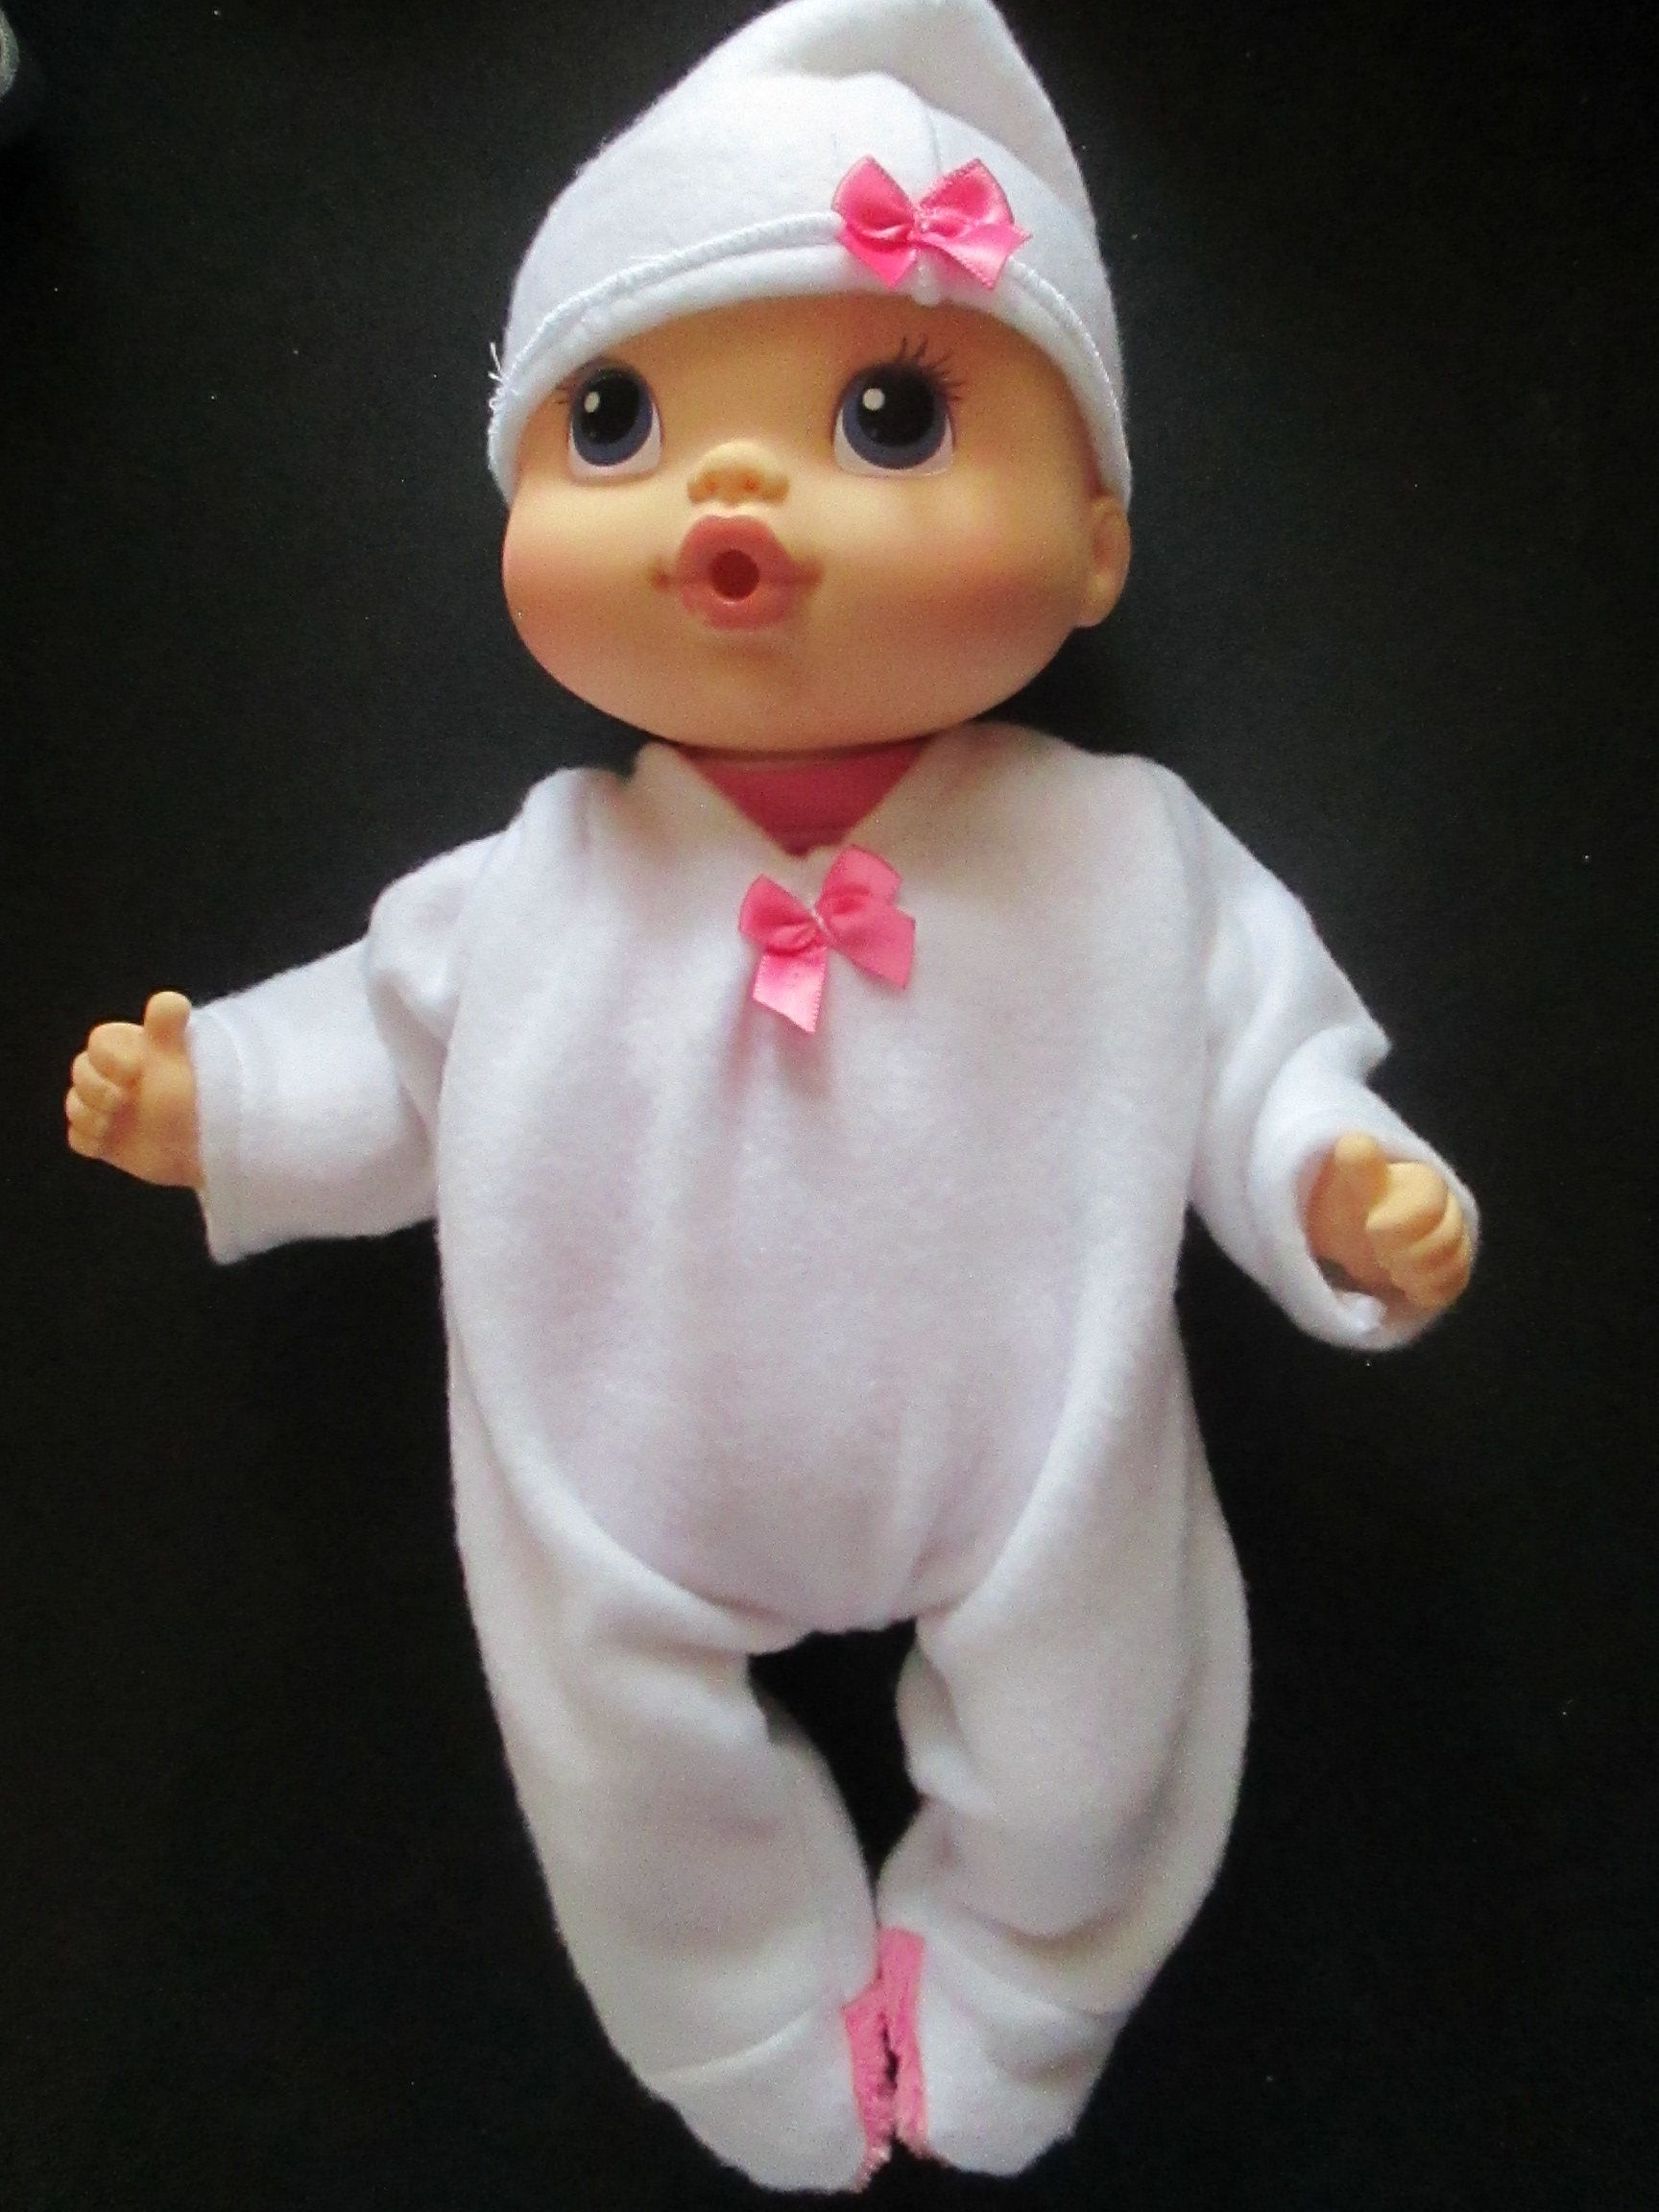 Doll Clothes 2 Pc Fleece Footed Sleeper And Hat 12 13 Baby Dolls Miniland Baby Alive With Images Baby Dolls Baby Alive Dolls Baby Alive